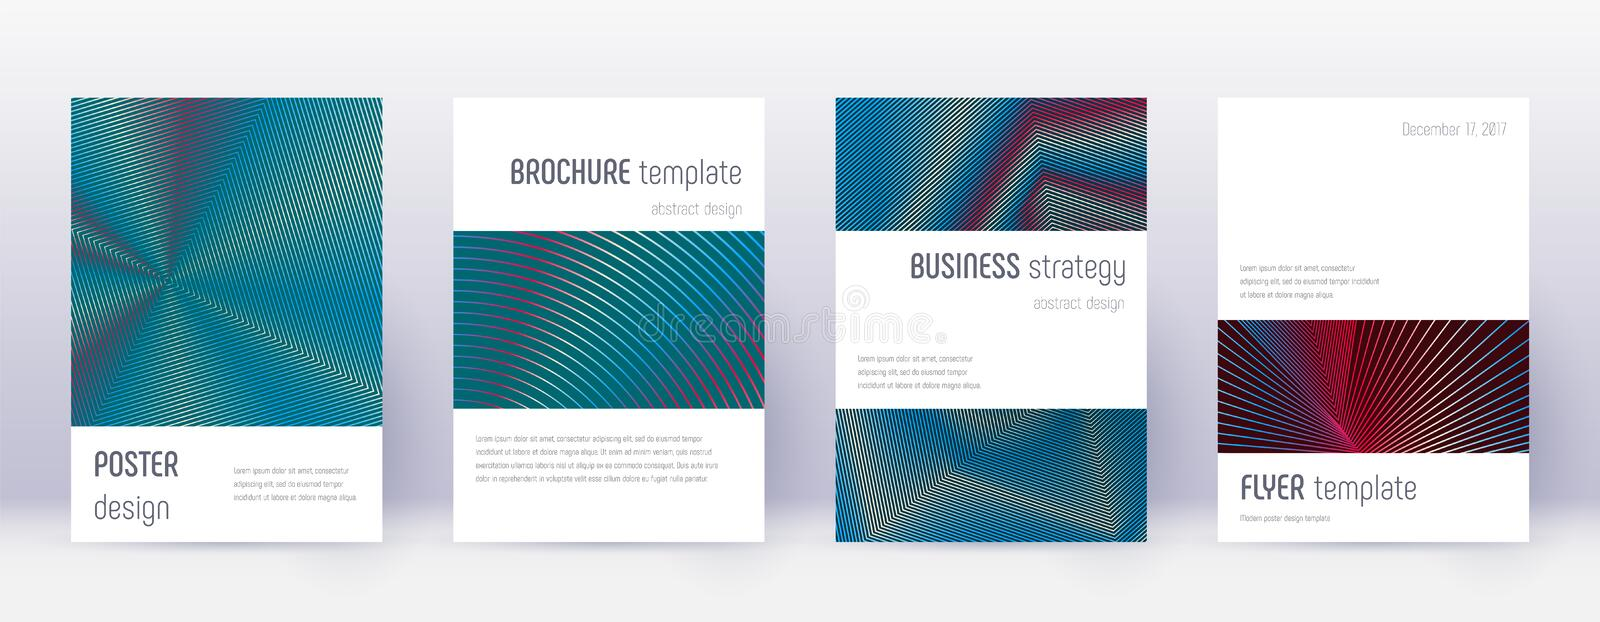 Minimalistic brochure design template set. Red abs. Tract lines on white blue background. Authentic brochure design. Overwhelming catalog, poster, book template vector illustration